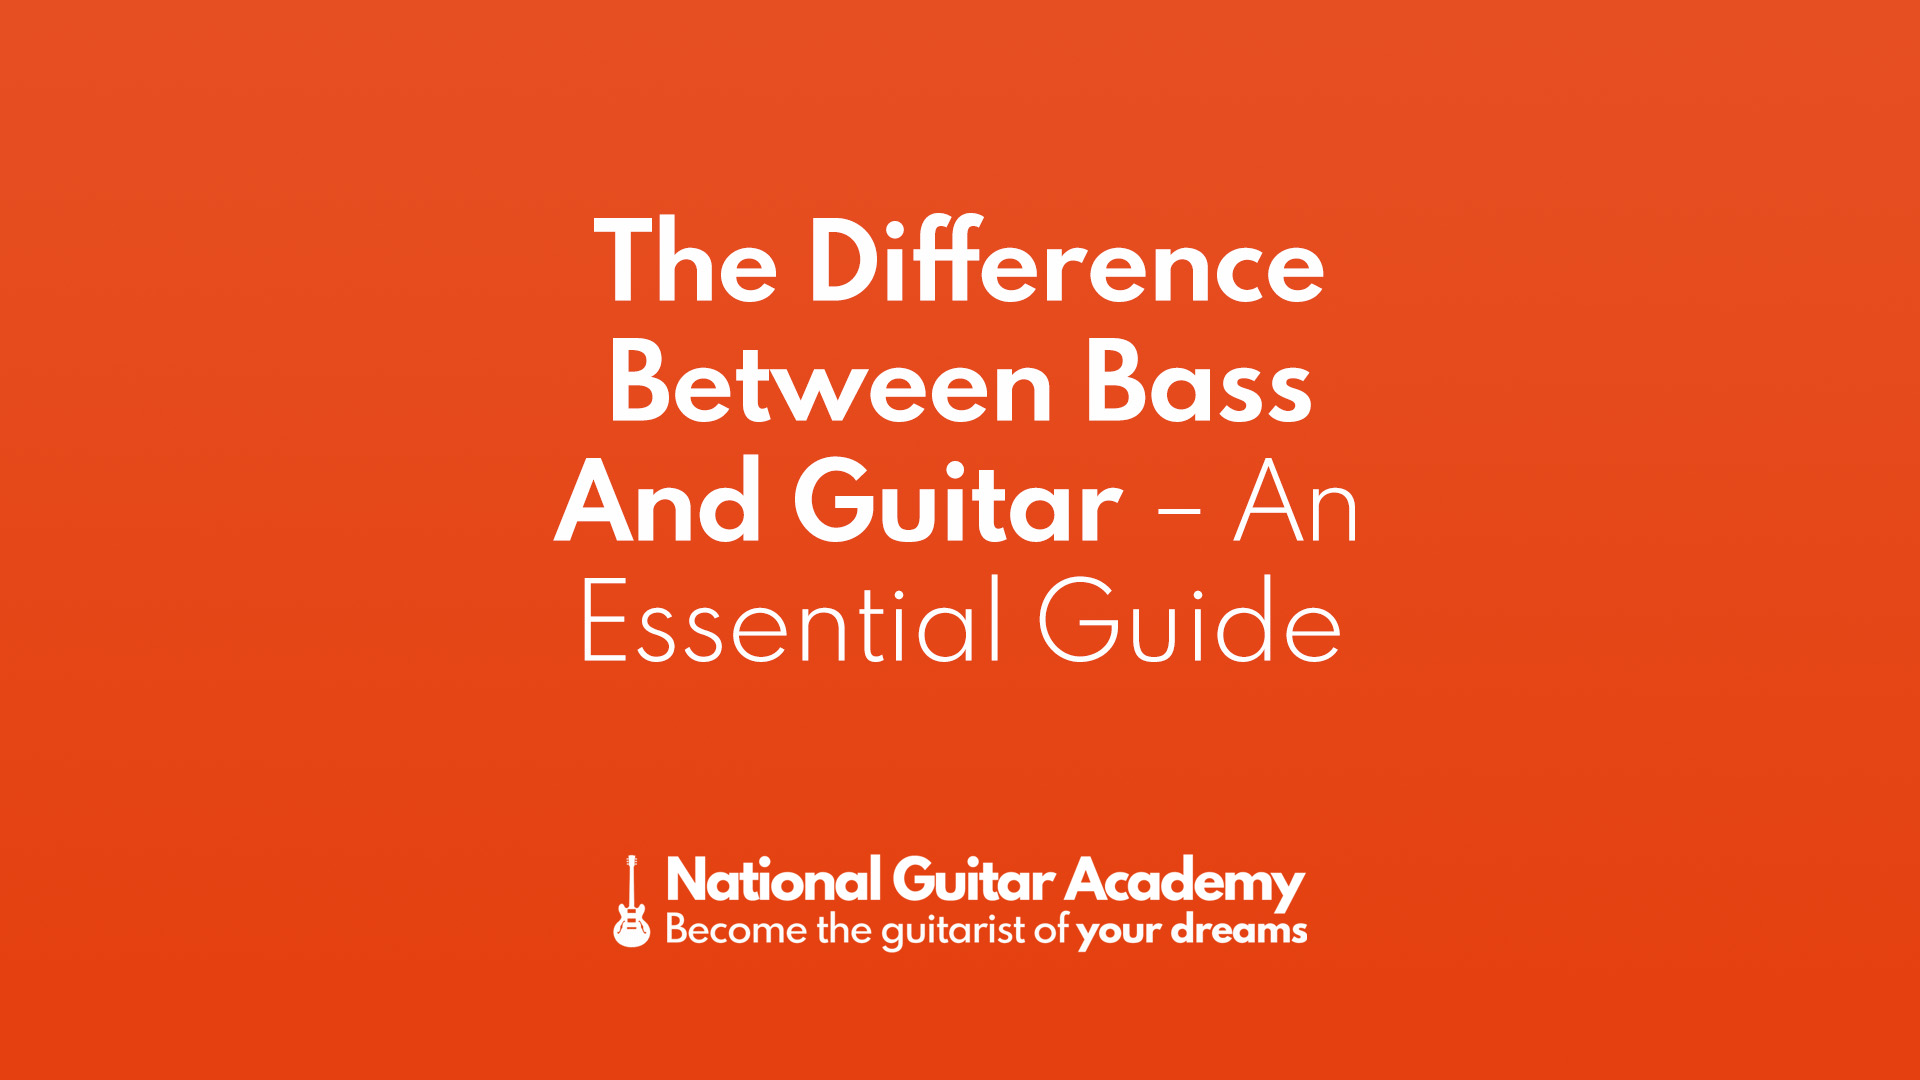 The Difference Between Bass And Guitar